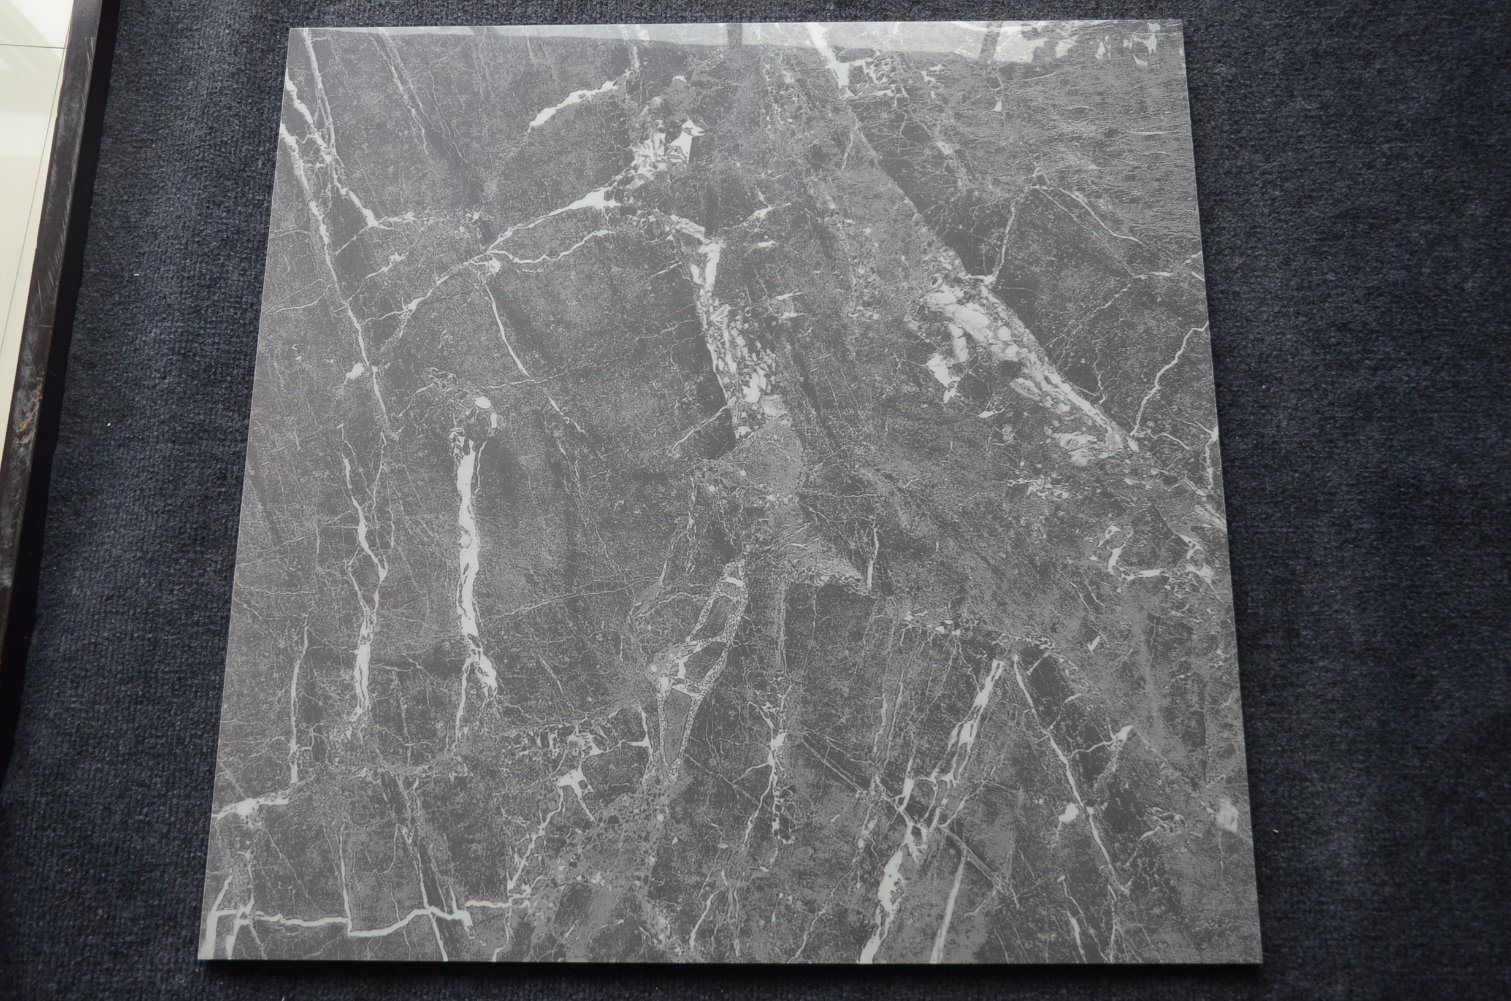 China hs649gn gray color cheap ceramic floor tile 60x60 price hs649gn gray color cheap ceramic floor tile 60x60 price dailygadgetfo Gallery